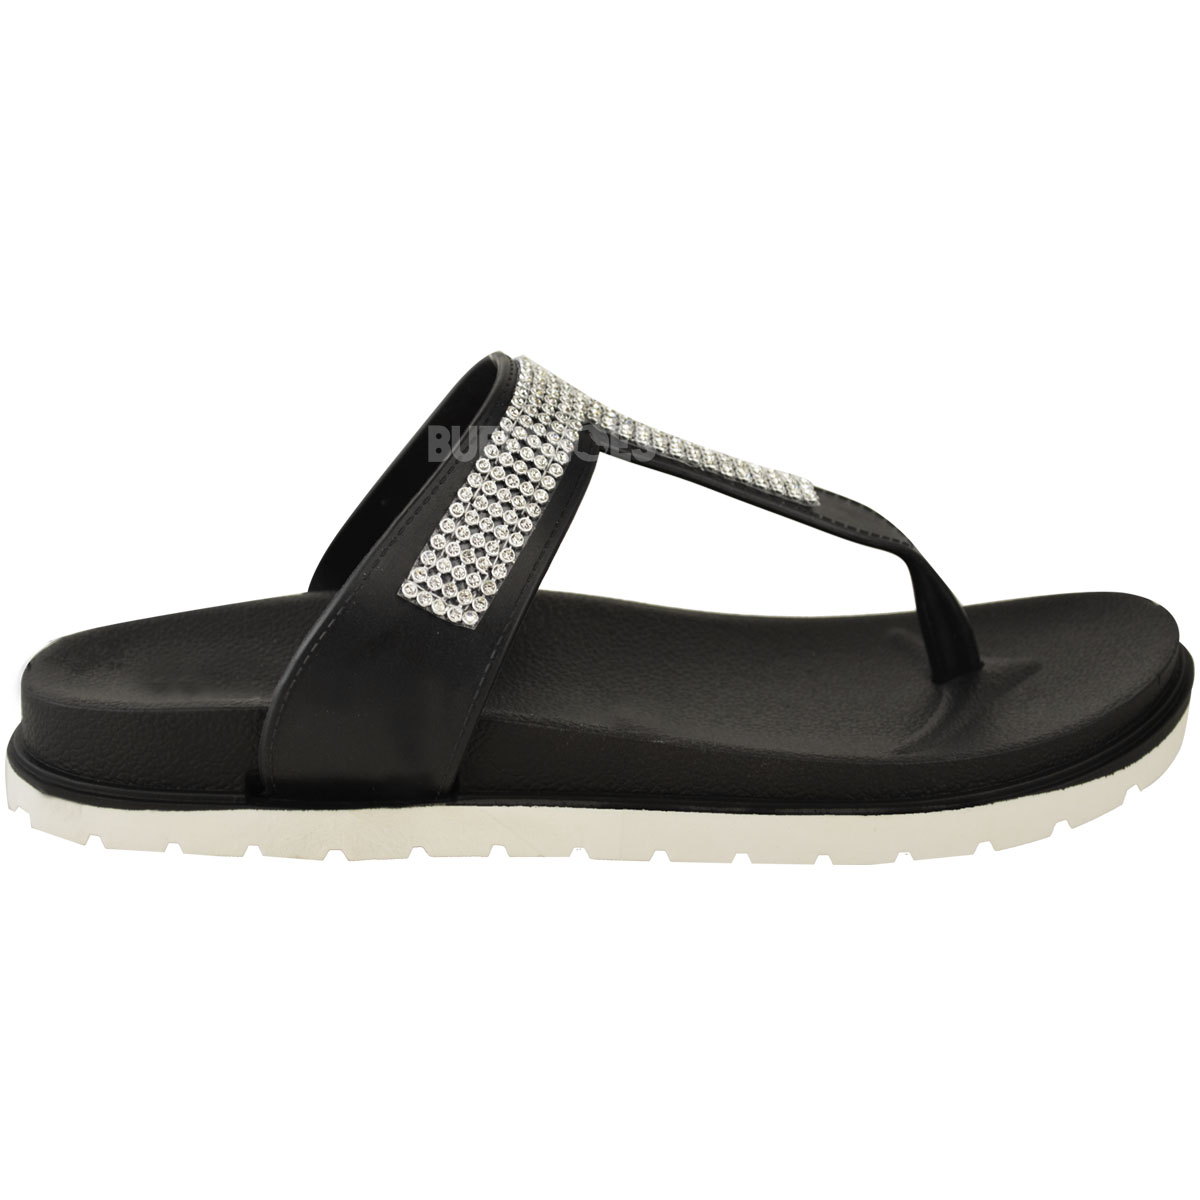 Womens-Ladies-Summer-Jelly-Sandals-Diamante-Wedge-Cushioned-Comfort-Shoes-Size thumbnail 4